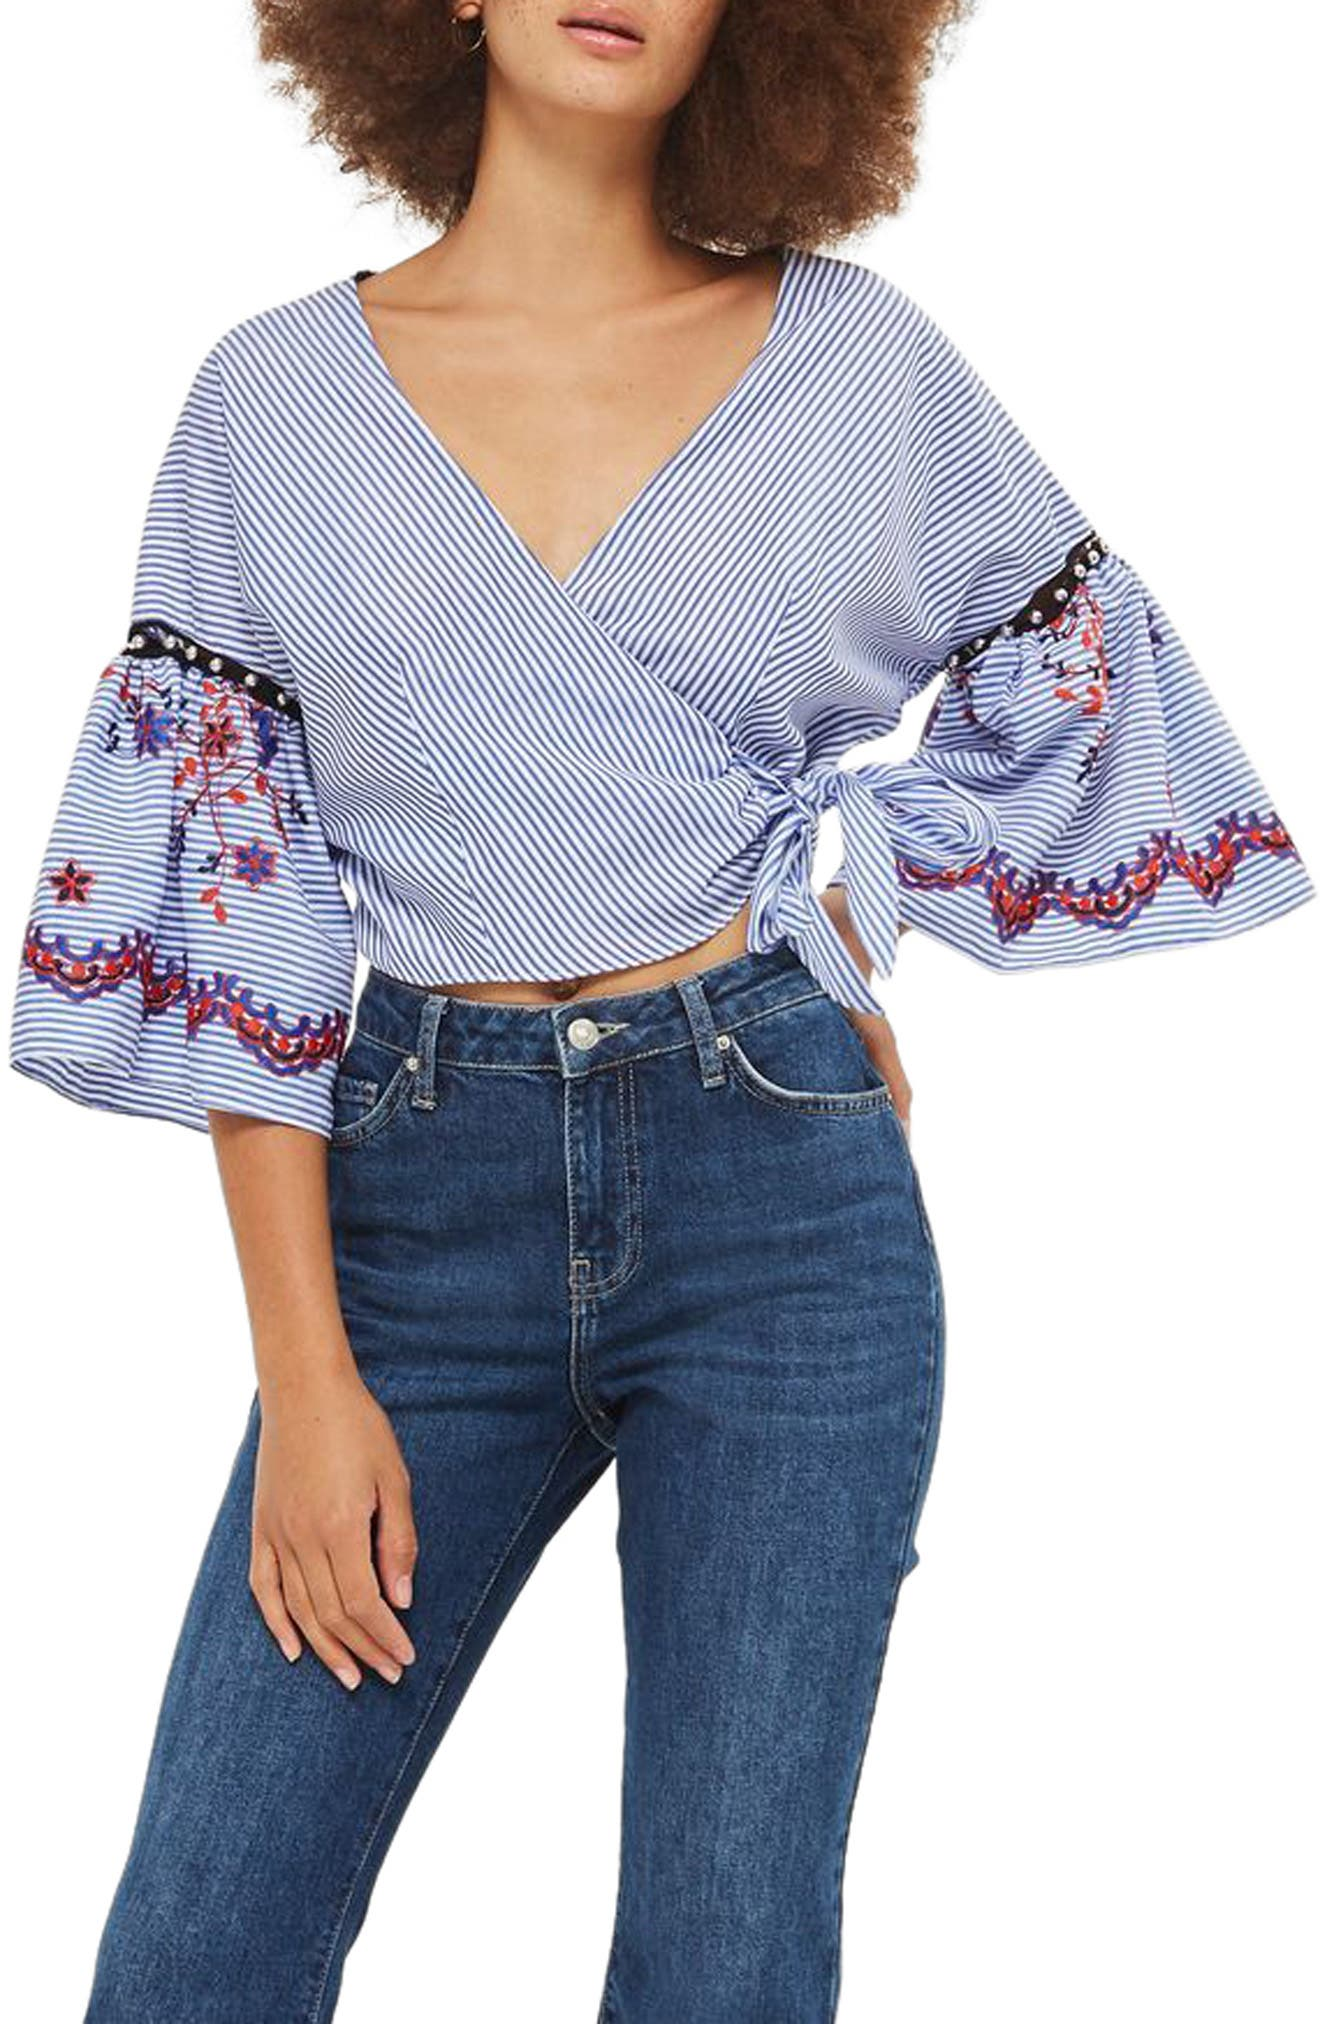 TOPSHOP, Embroidered Stripe Wrap Top, Main thumbnail 1, color, 400